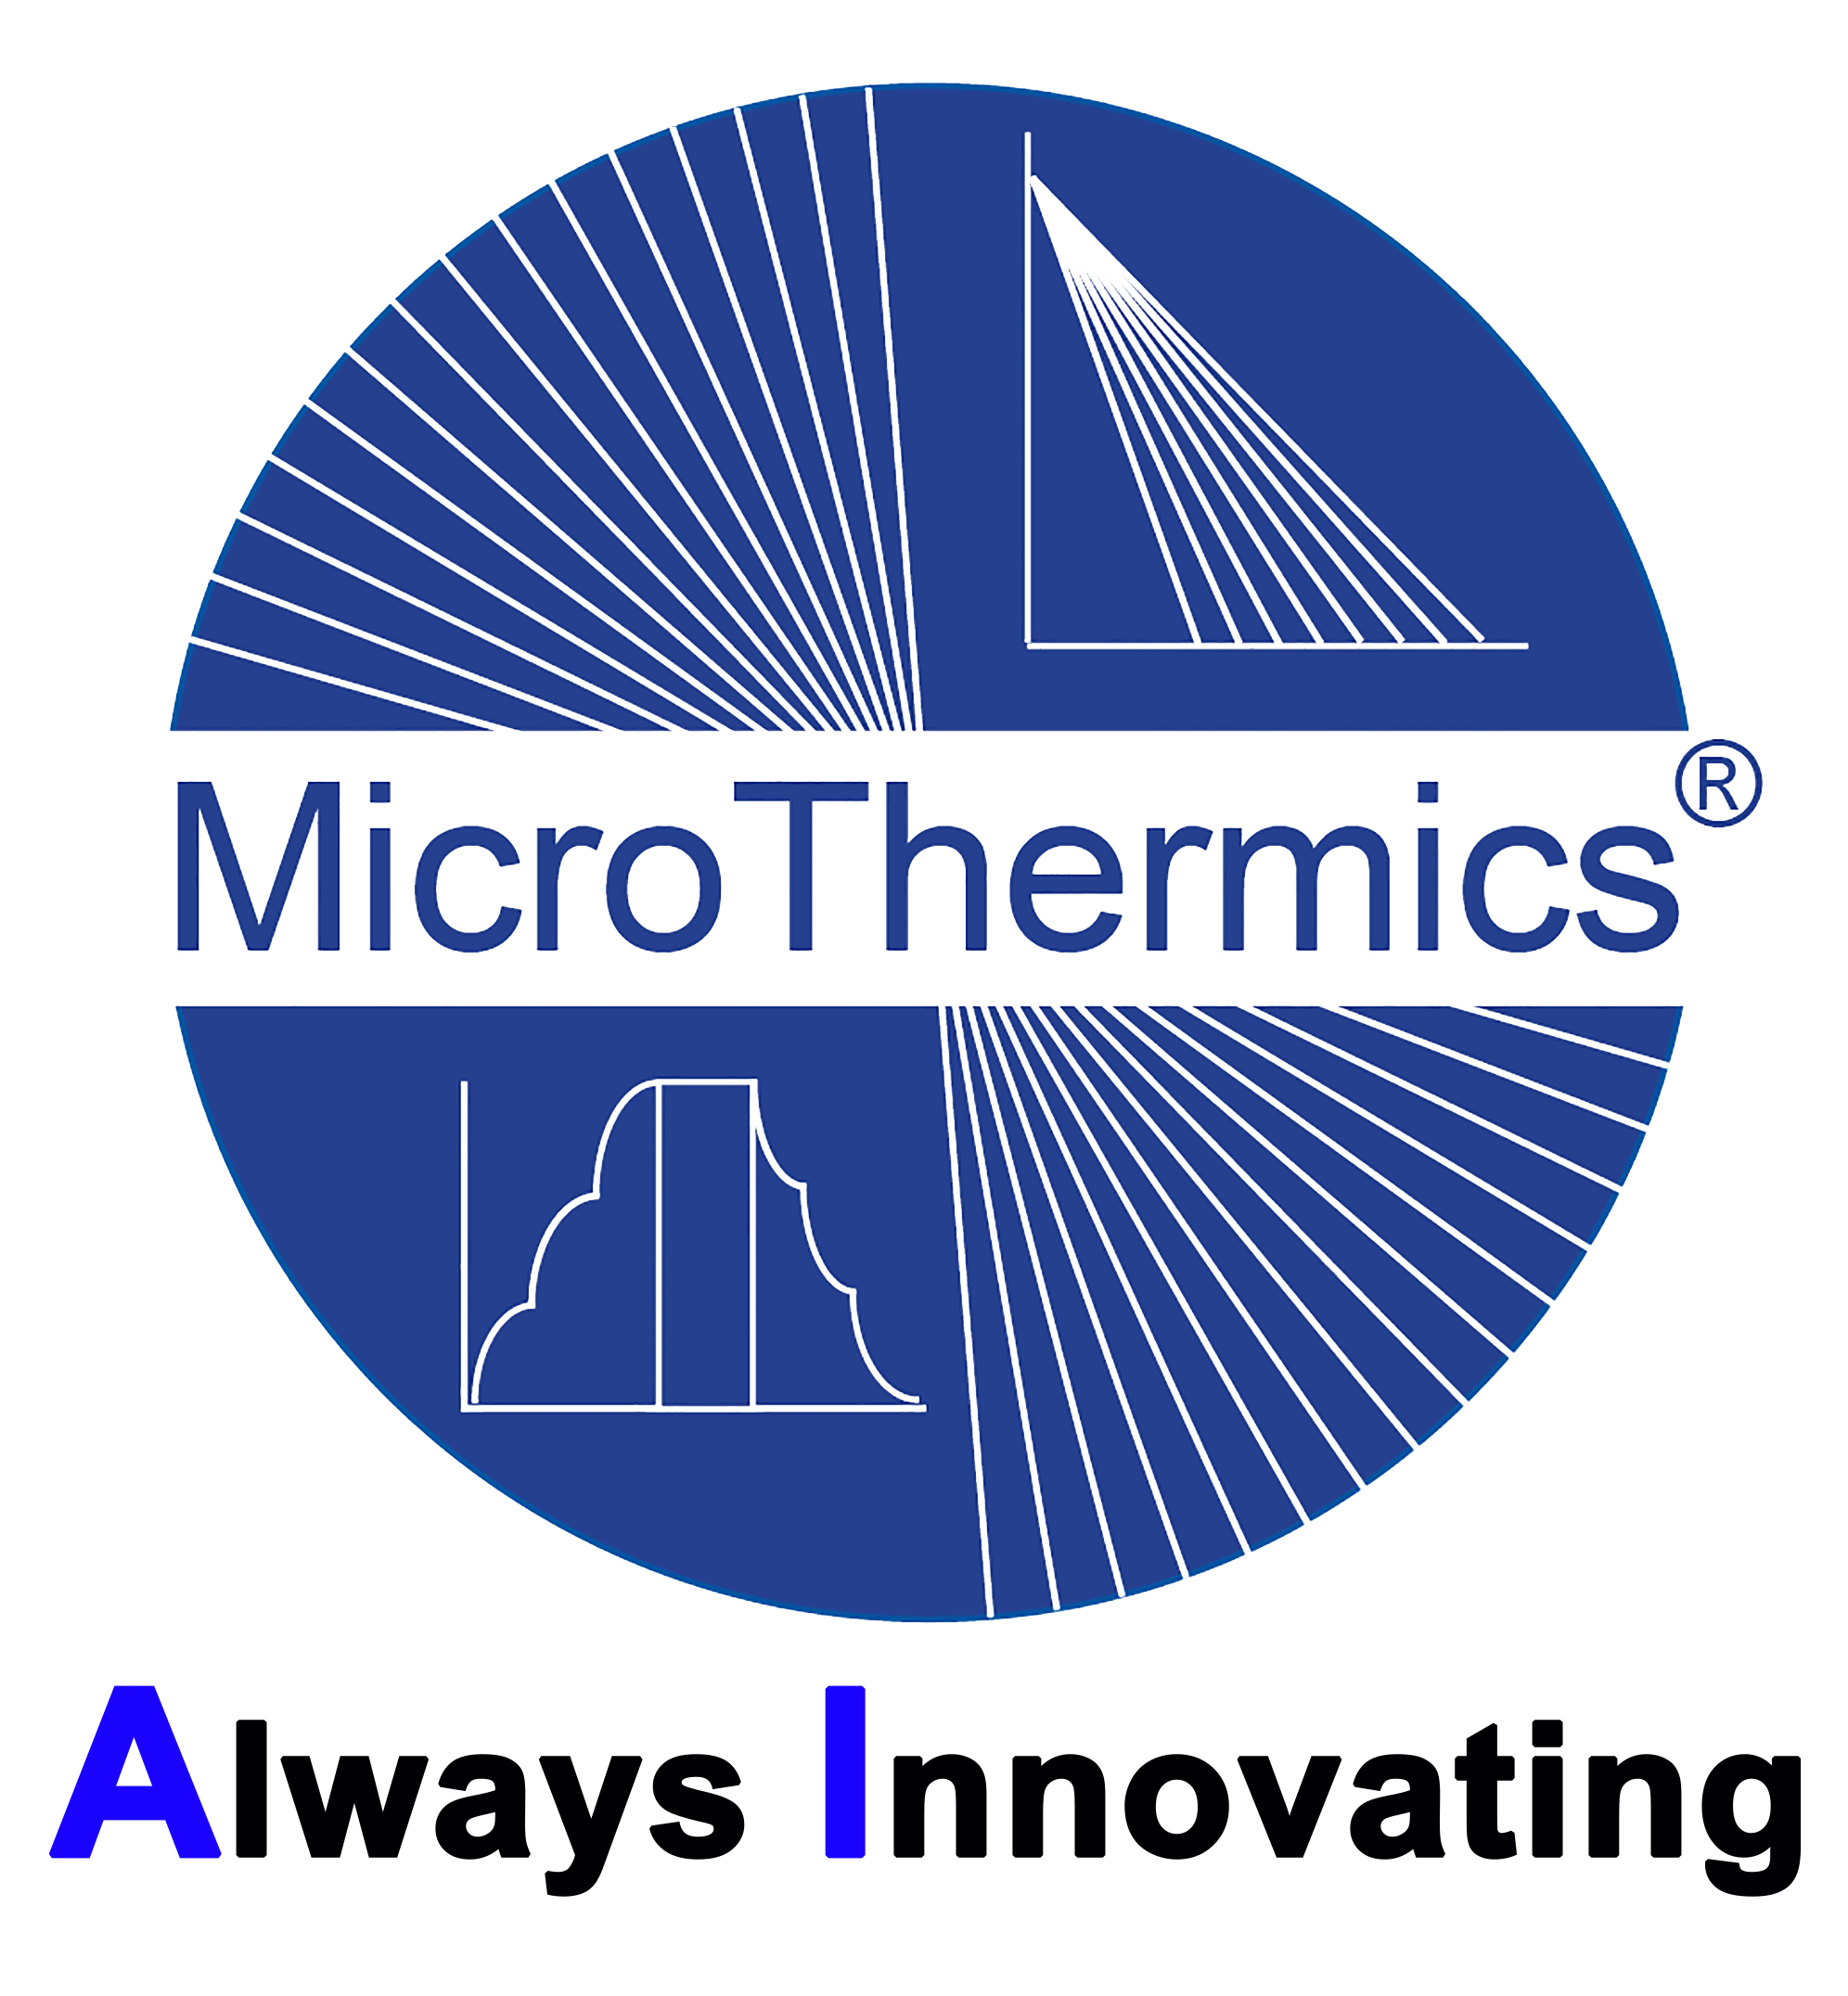 MicroThermics 2 Minute Introduction Video